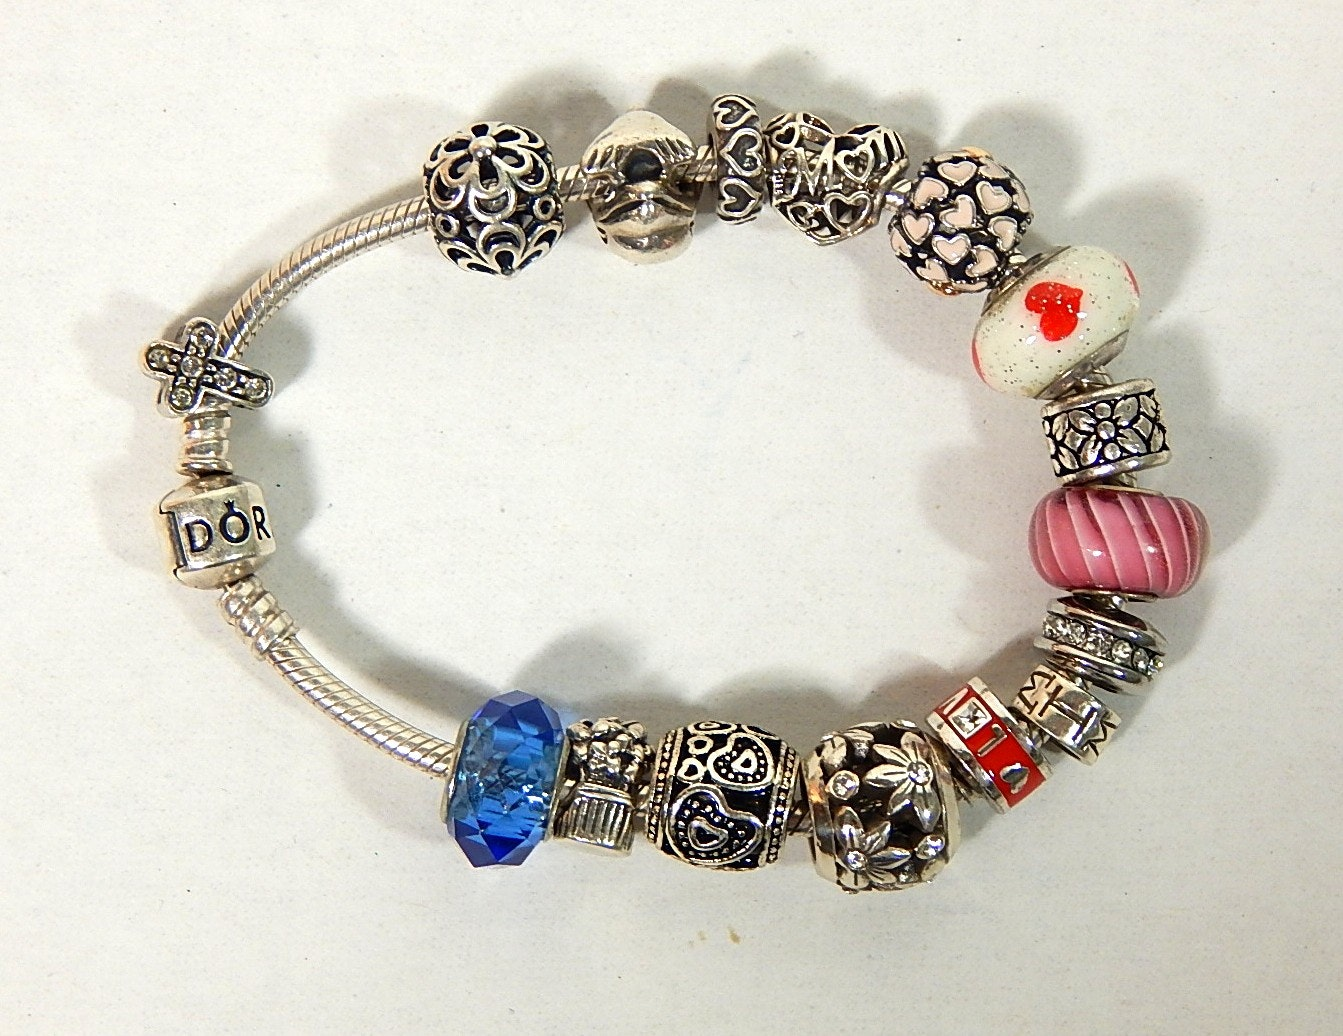 Pandora Sterling Silver Charm Bracelet with Various Sterling Silver Charms